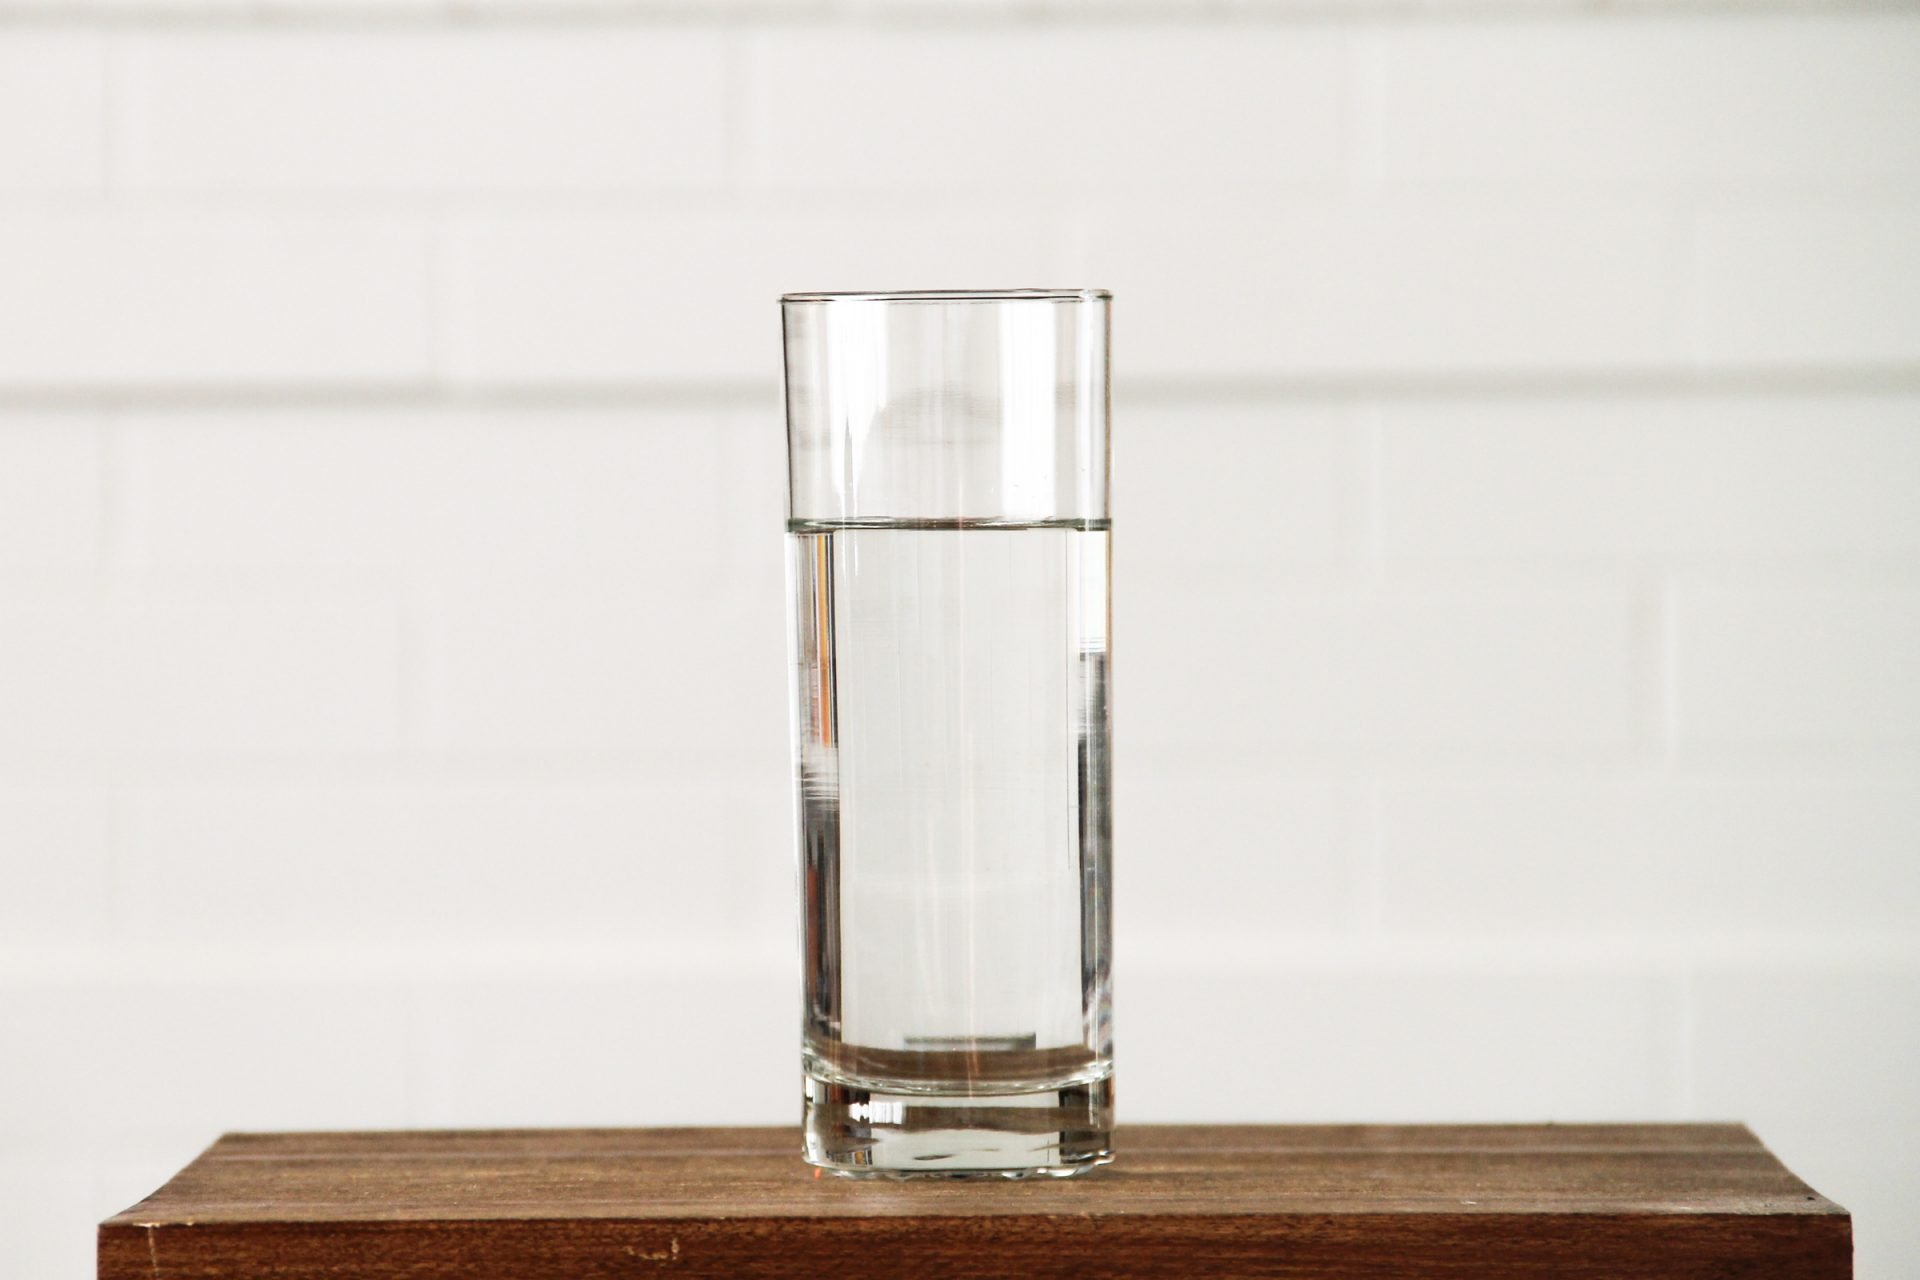 Glass of Clean Water on a Small Table